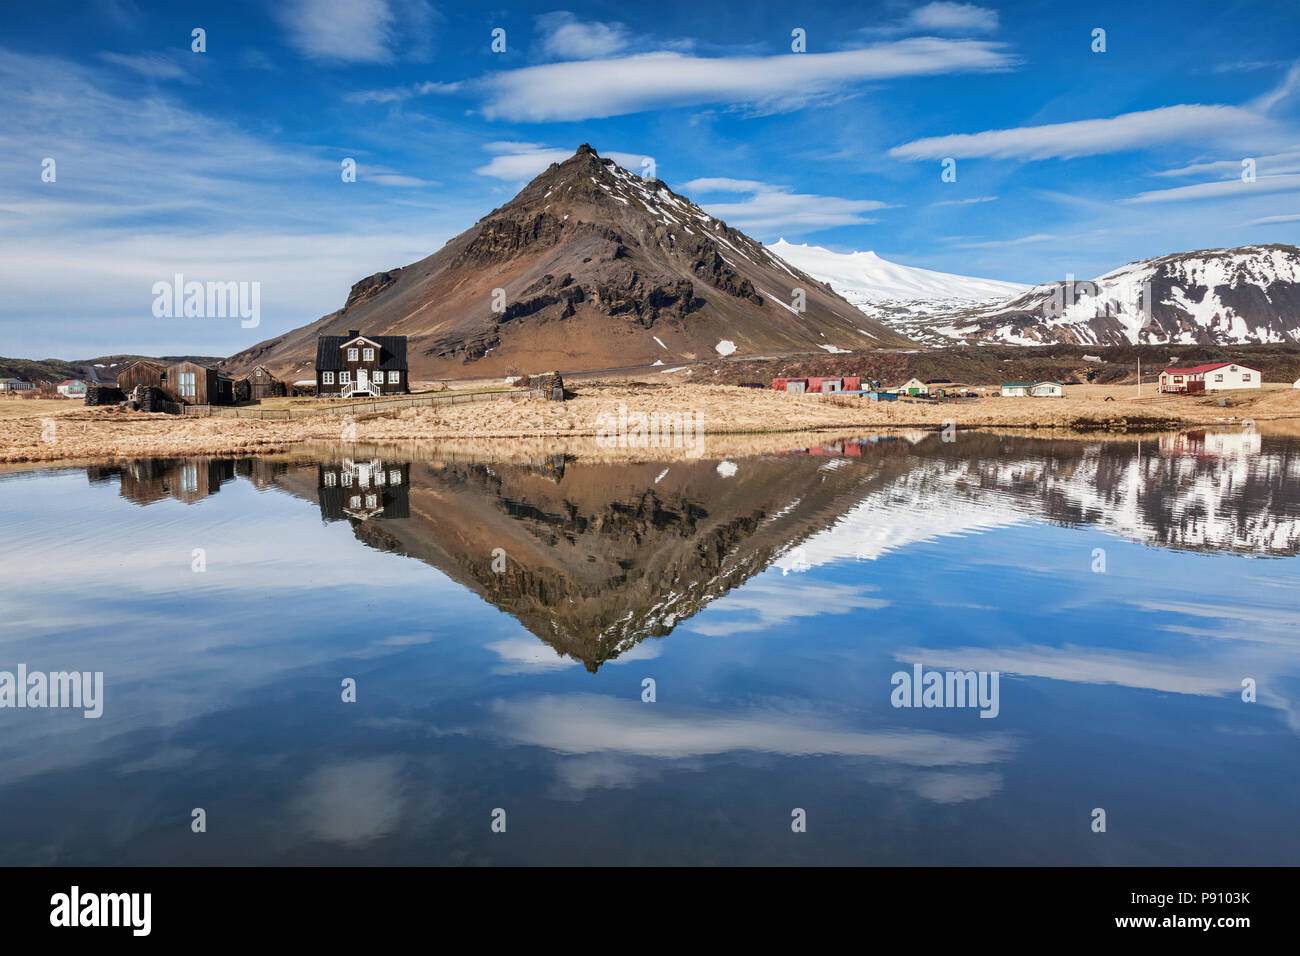 The mountain Stapafell reflected in a pool at Arnarstapi on the Snaefellsnes Peninsula, Iceland. - Stock Image